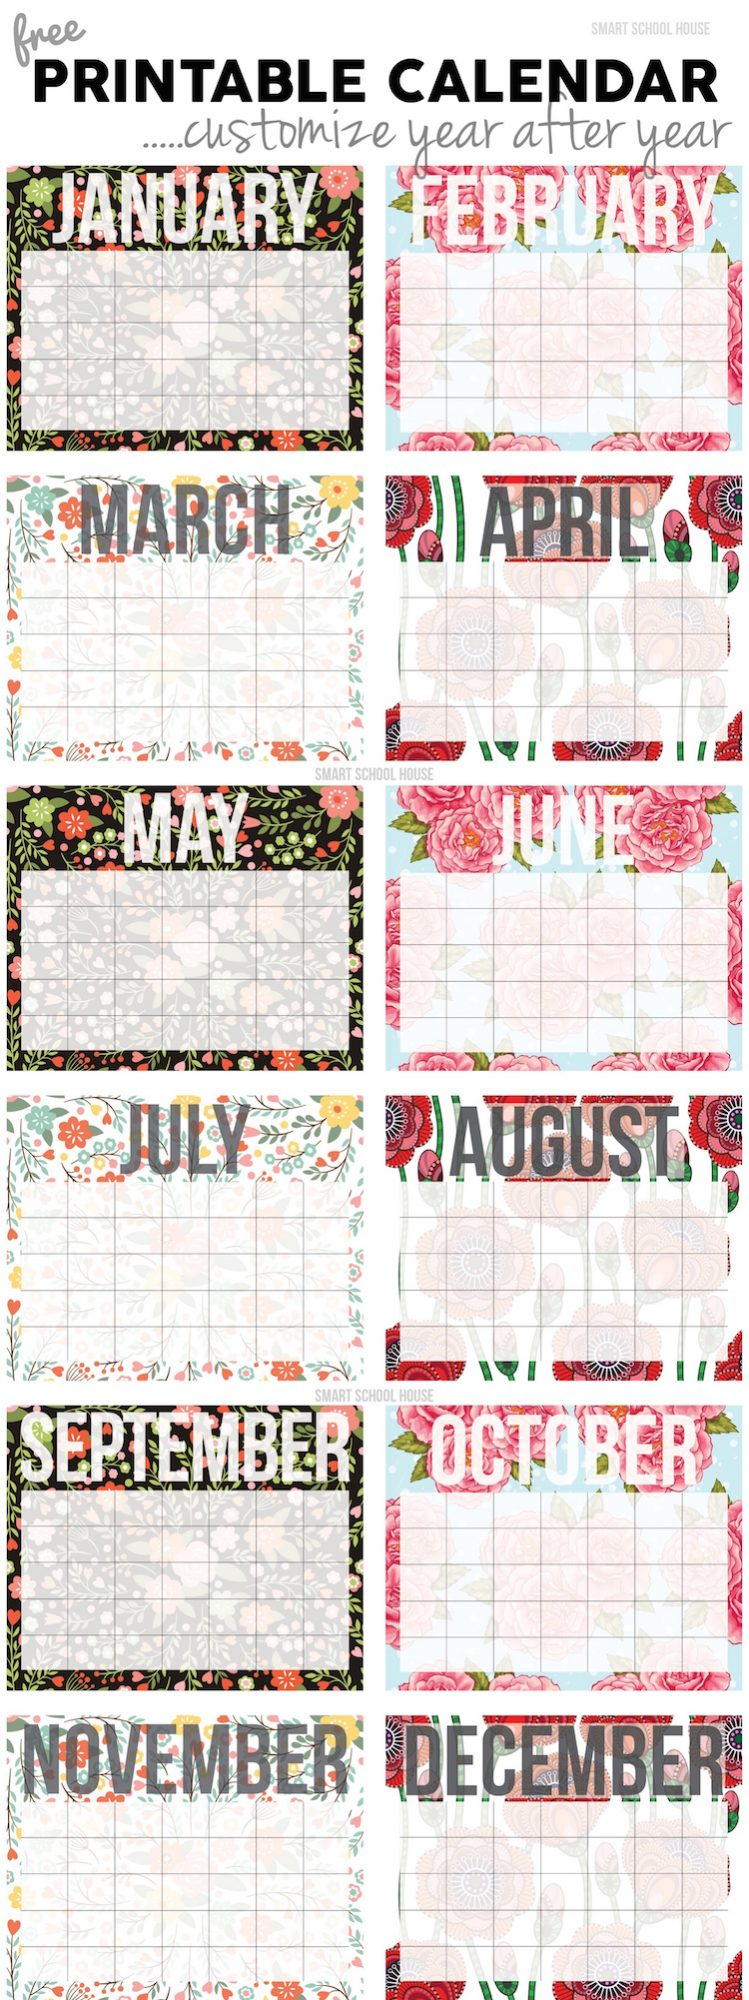 2021 Free Printable Calendars - 20+ Designs For Monthly